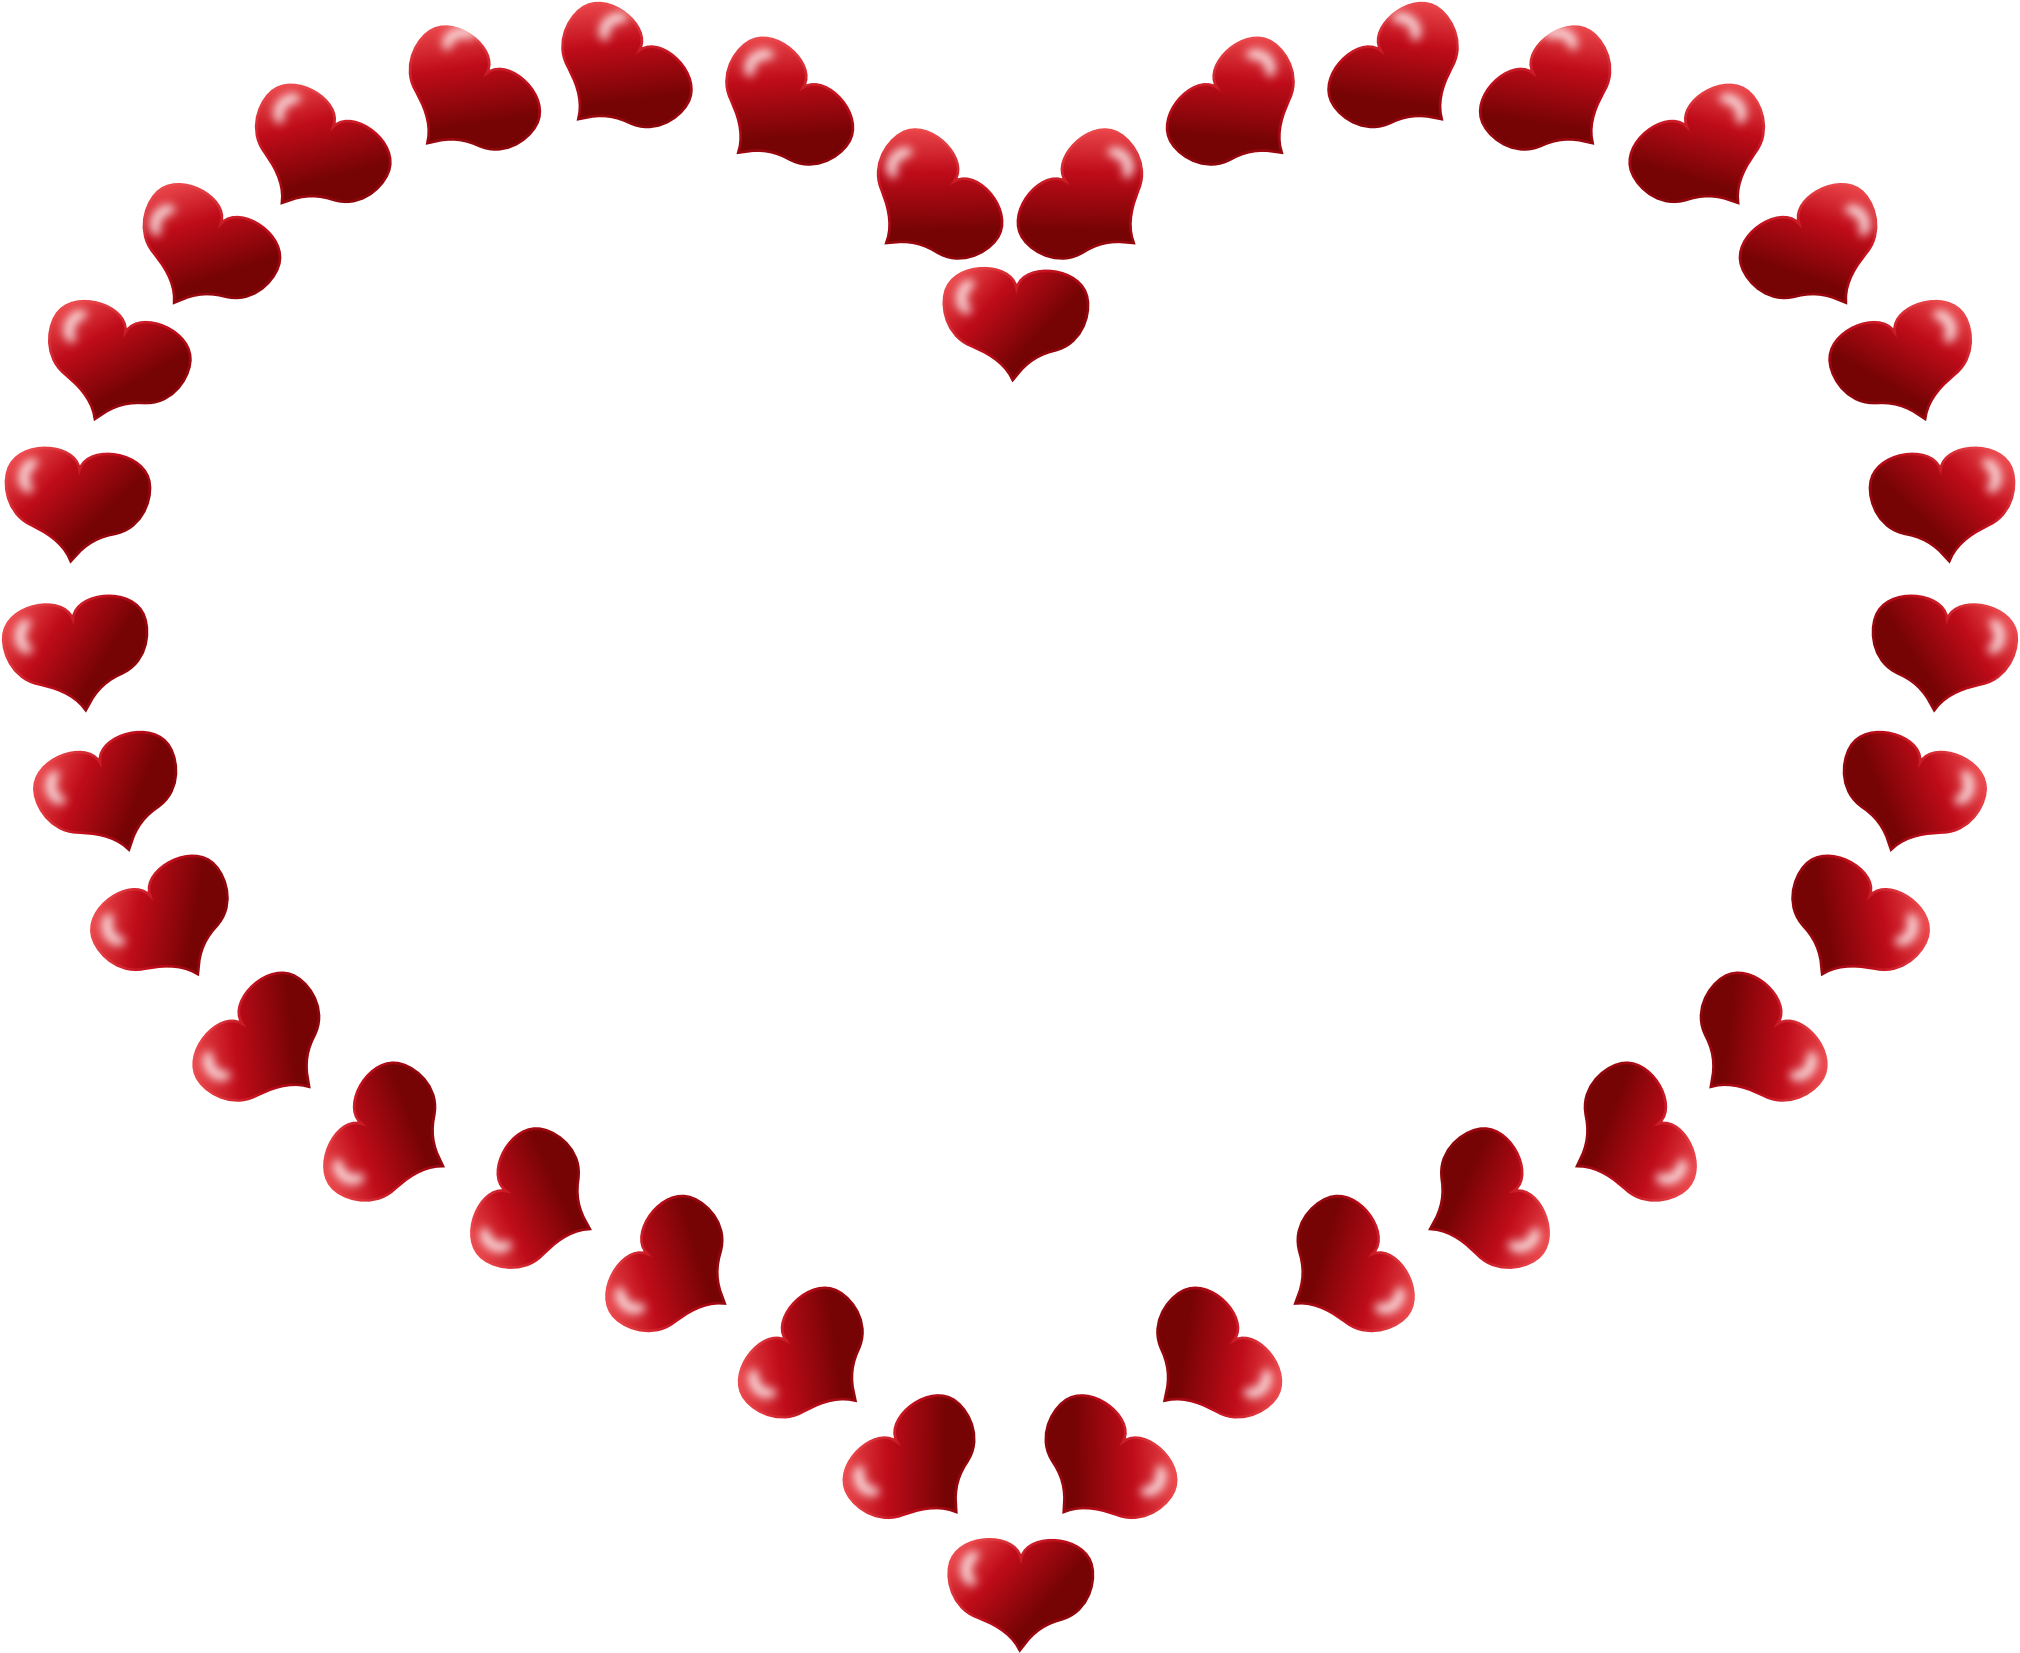 Free clipart heart borders image library 28+ Collection of Heart Frame Clipart | High quality, free cliparts ... image library